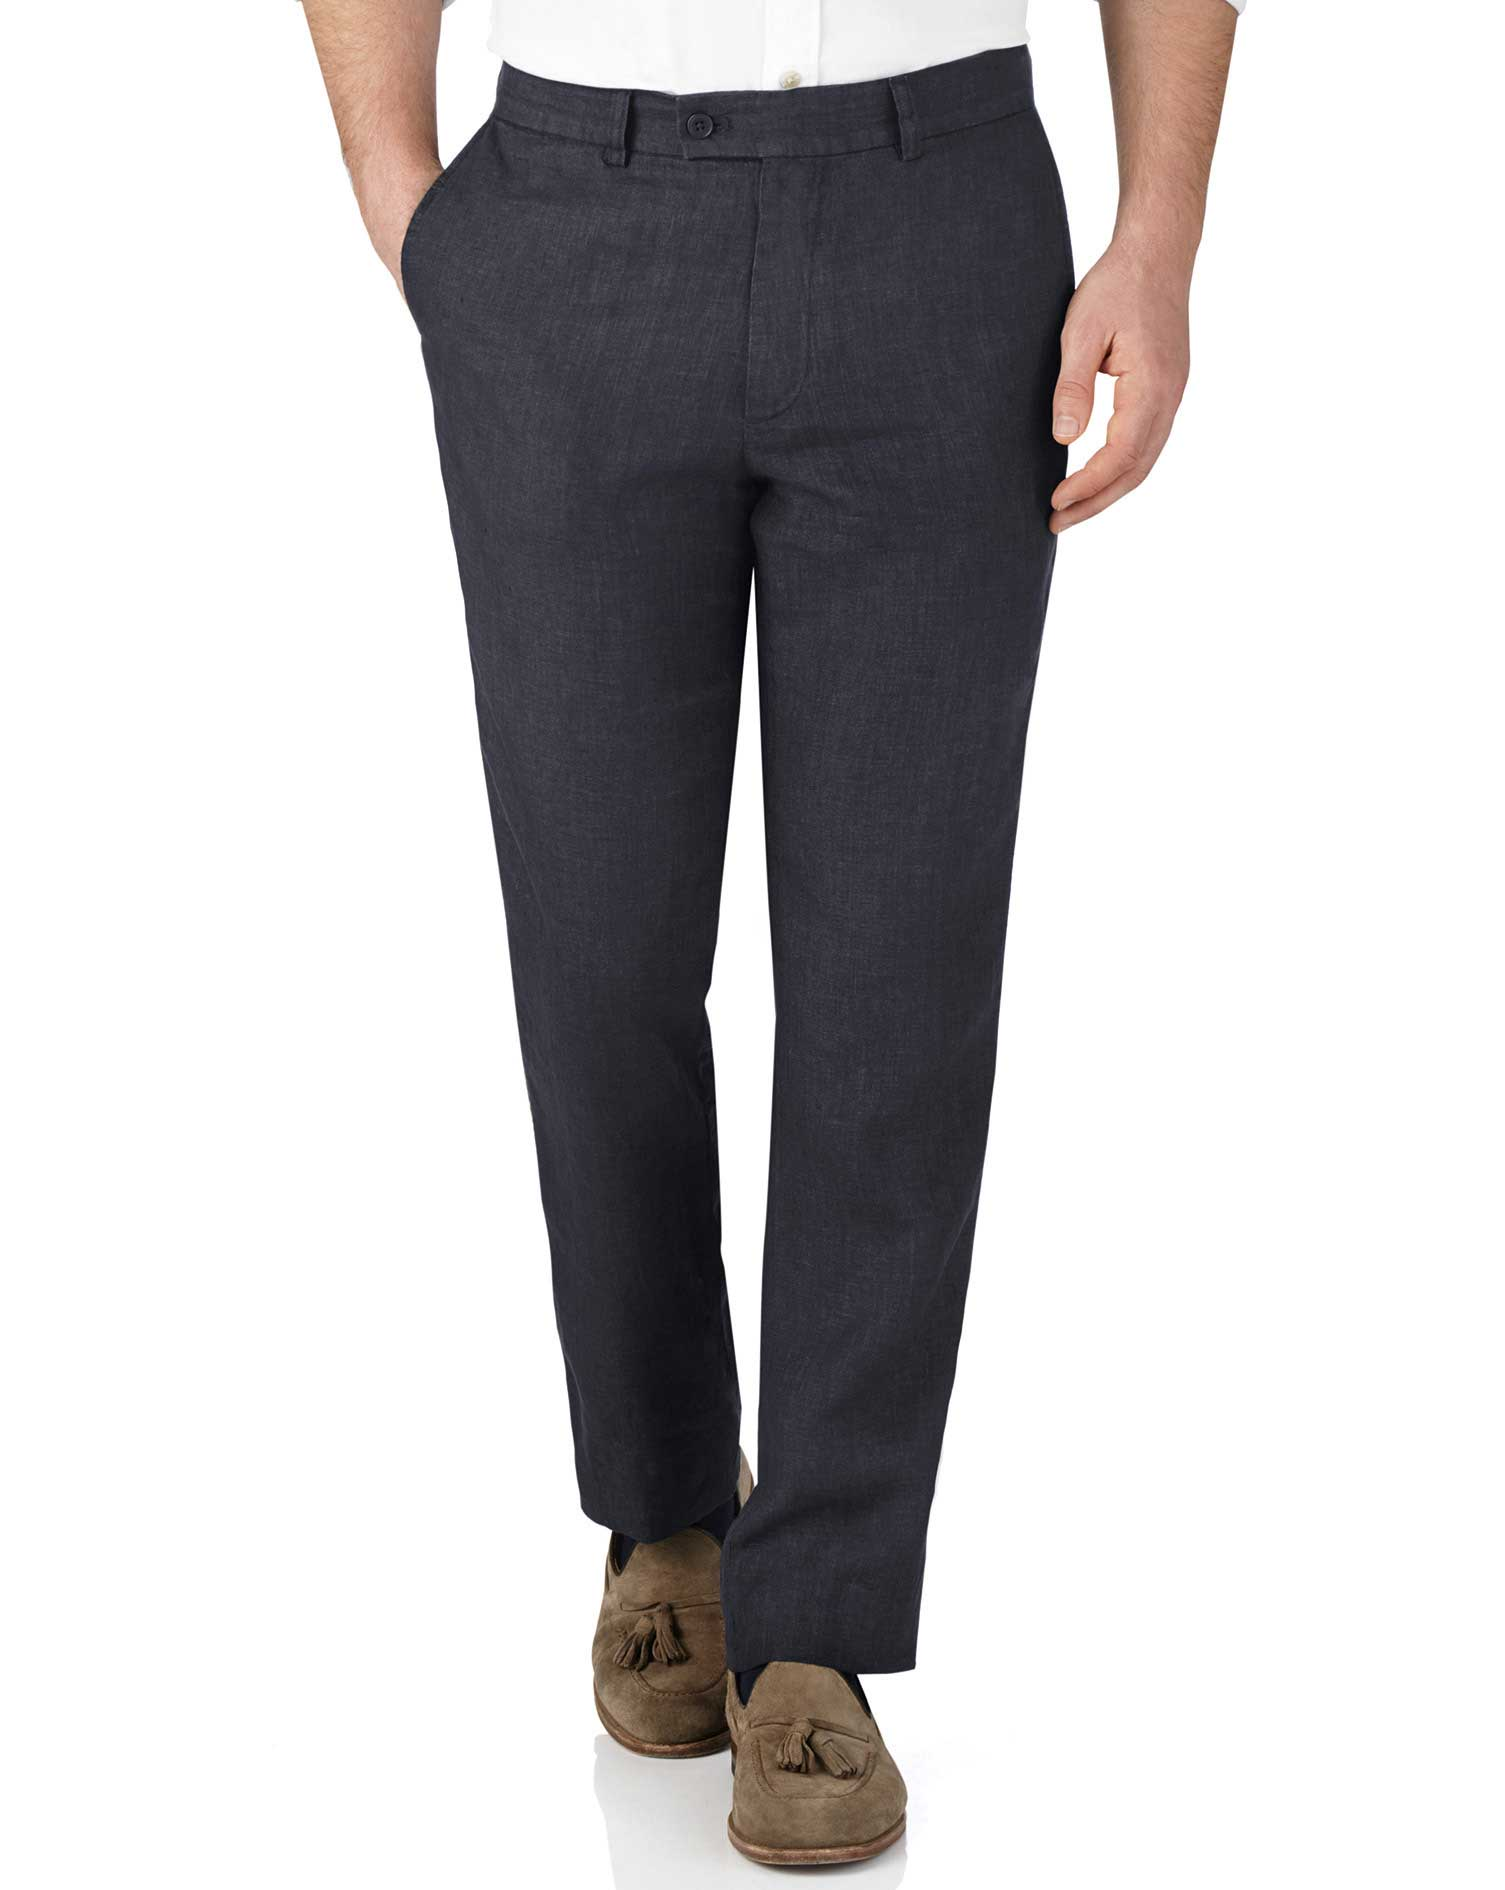 Navy Slim Fit Linen Trousers Size W34 L30 by Charles Tyrwhitt